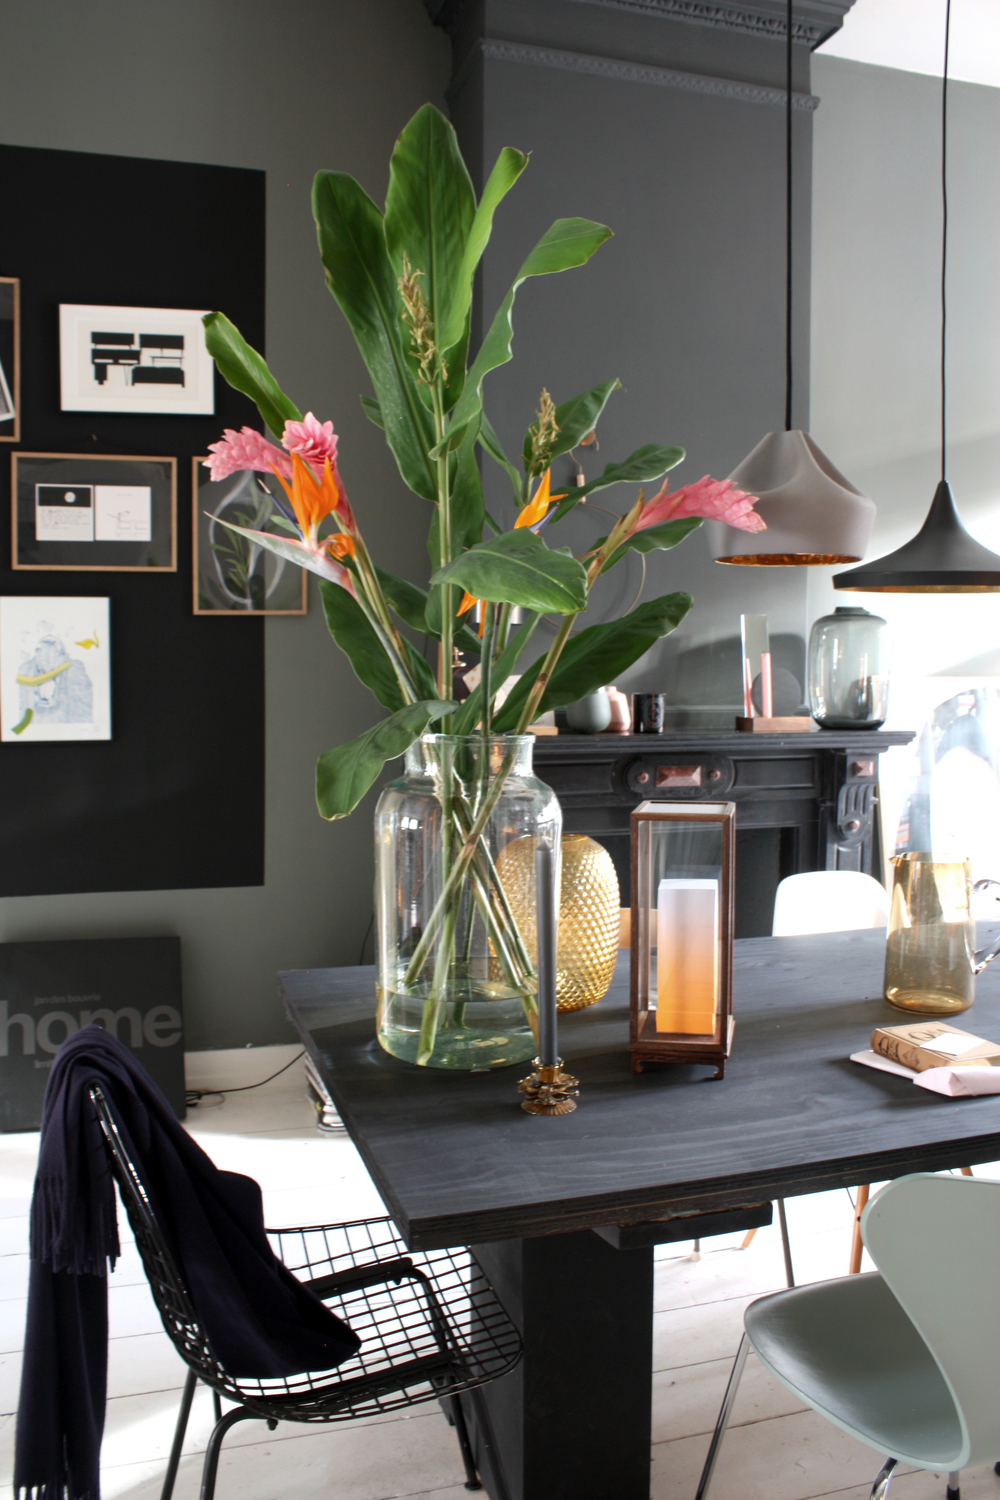 THEO-BERT POT INTERIEUR BLOGGER INTERIOR BLOG GRAFISCH ONTWERP